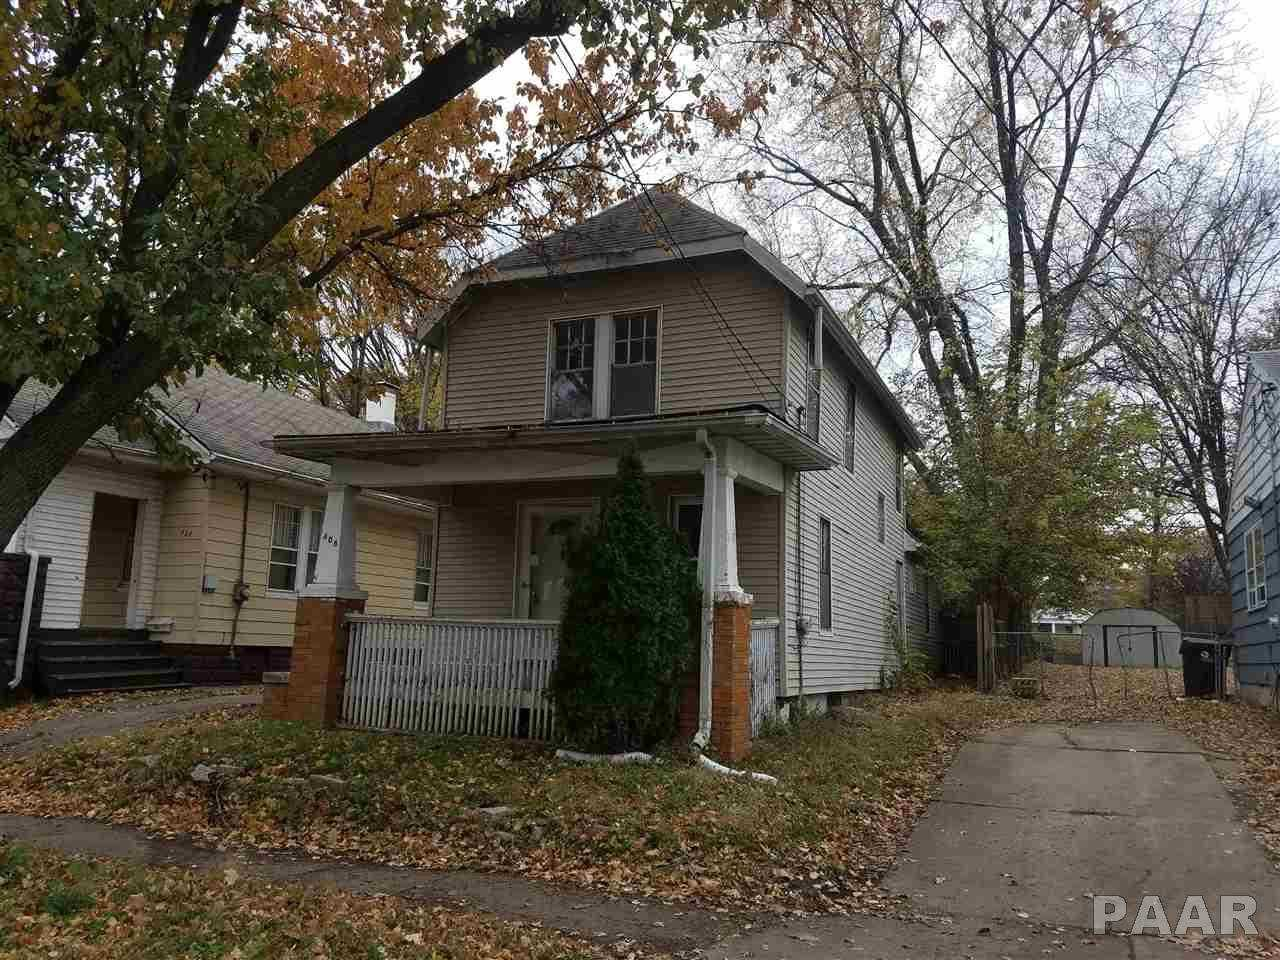 $7,000 - 2Br/1Ba -  for Sale in Thrush, Peoria